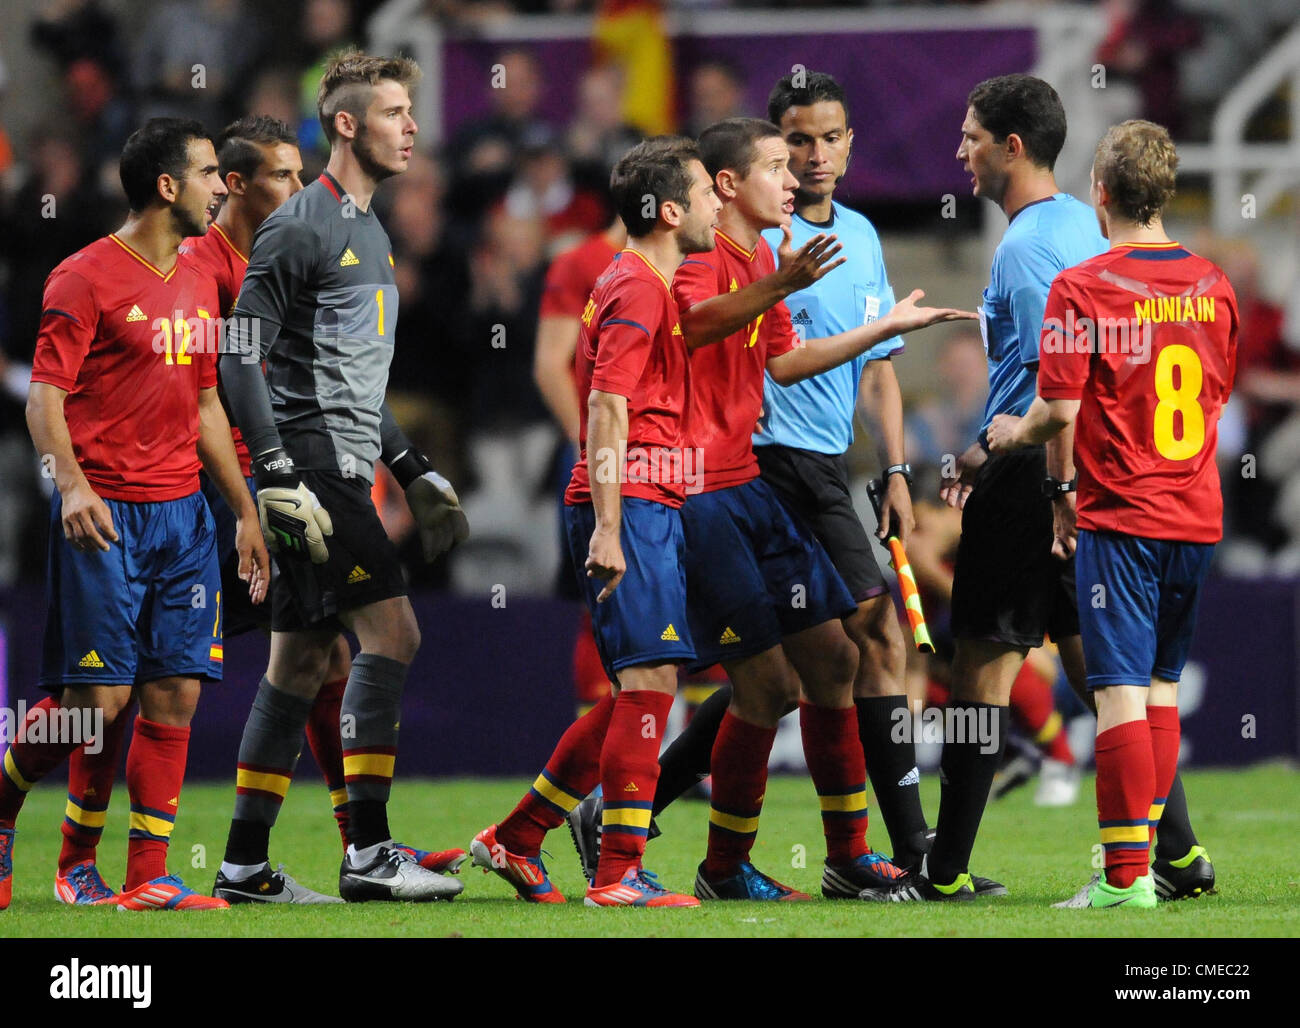 SPAIN PLAYERS CONFRONT REFEREE SPAIN V HONDURAS ST JAMES PARK NEWCASTLE ENGLAND 29 July 2012 - Stock Image